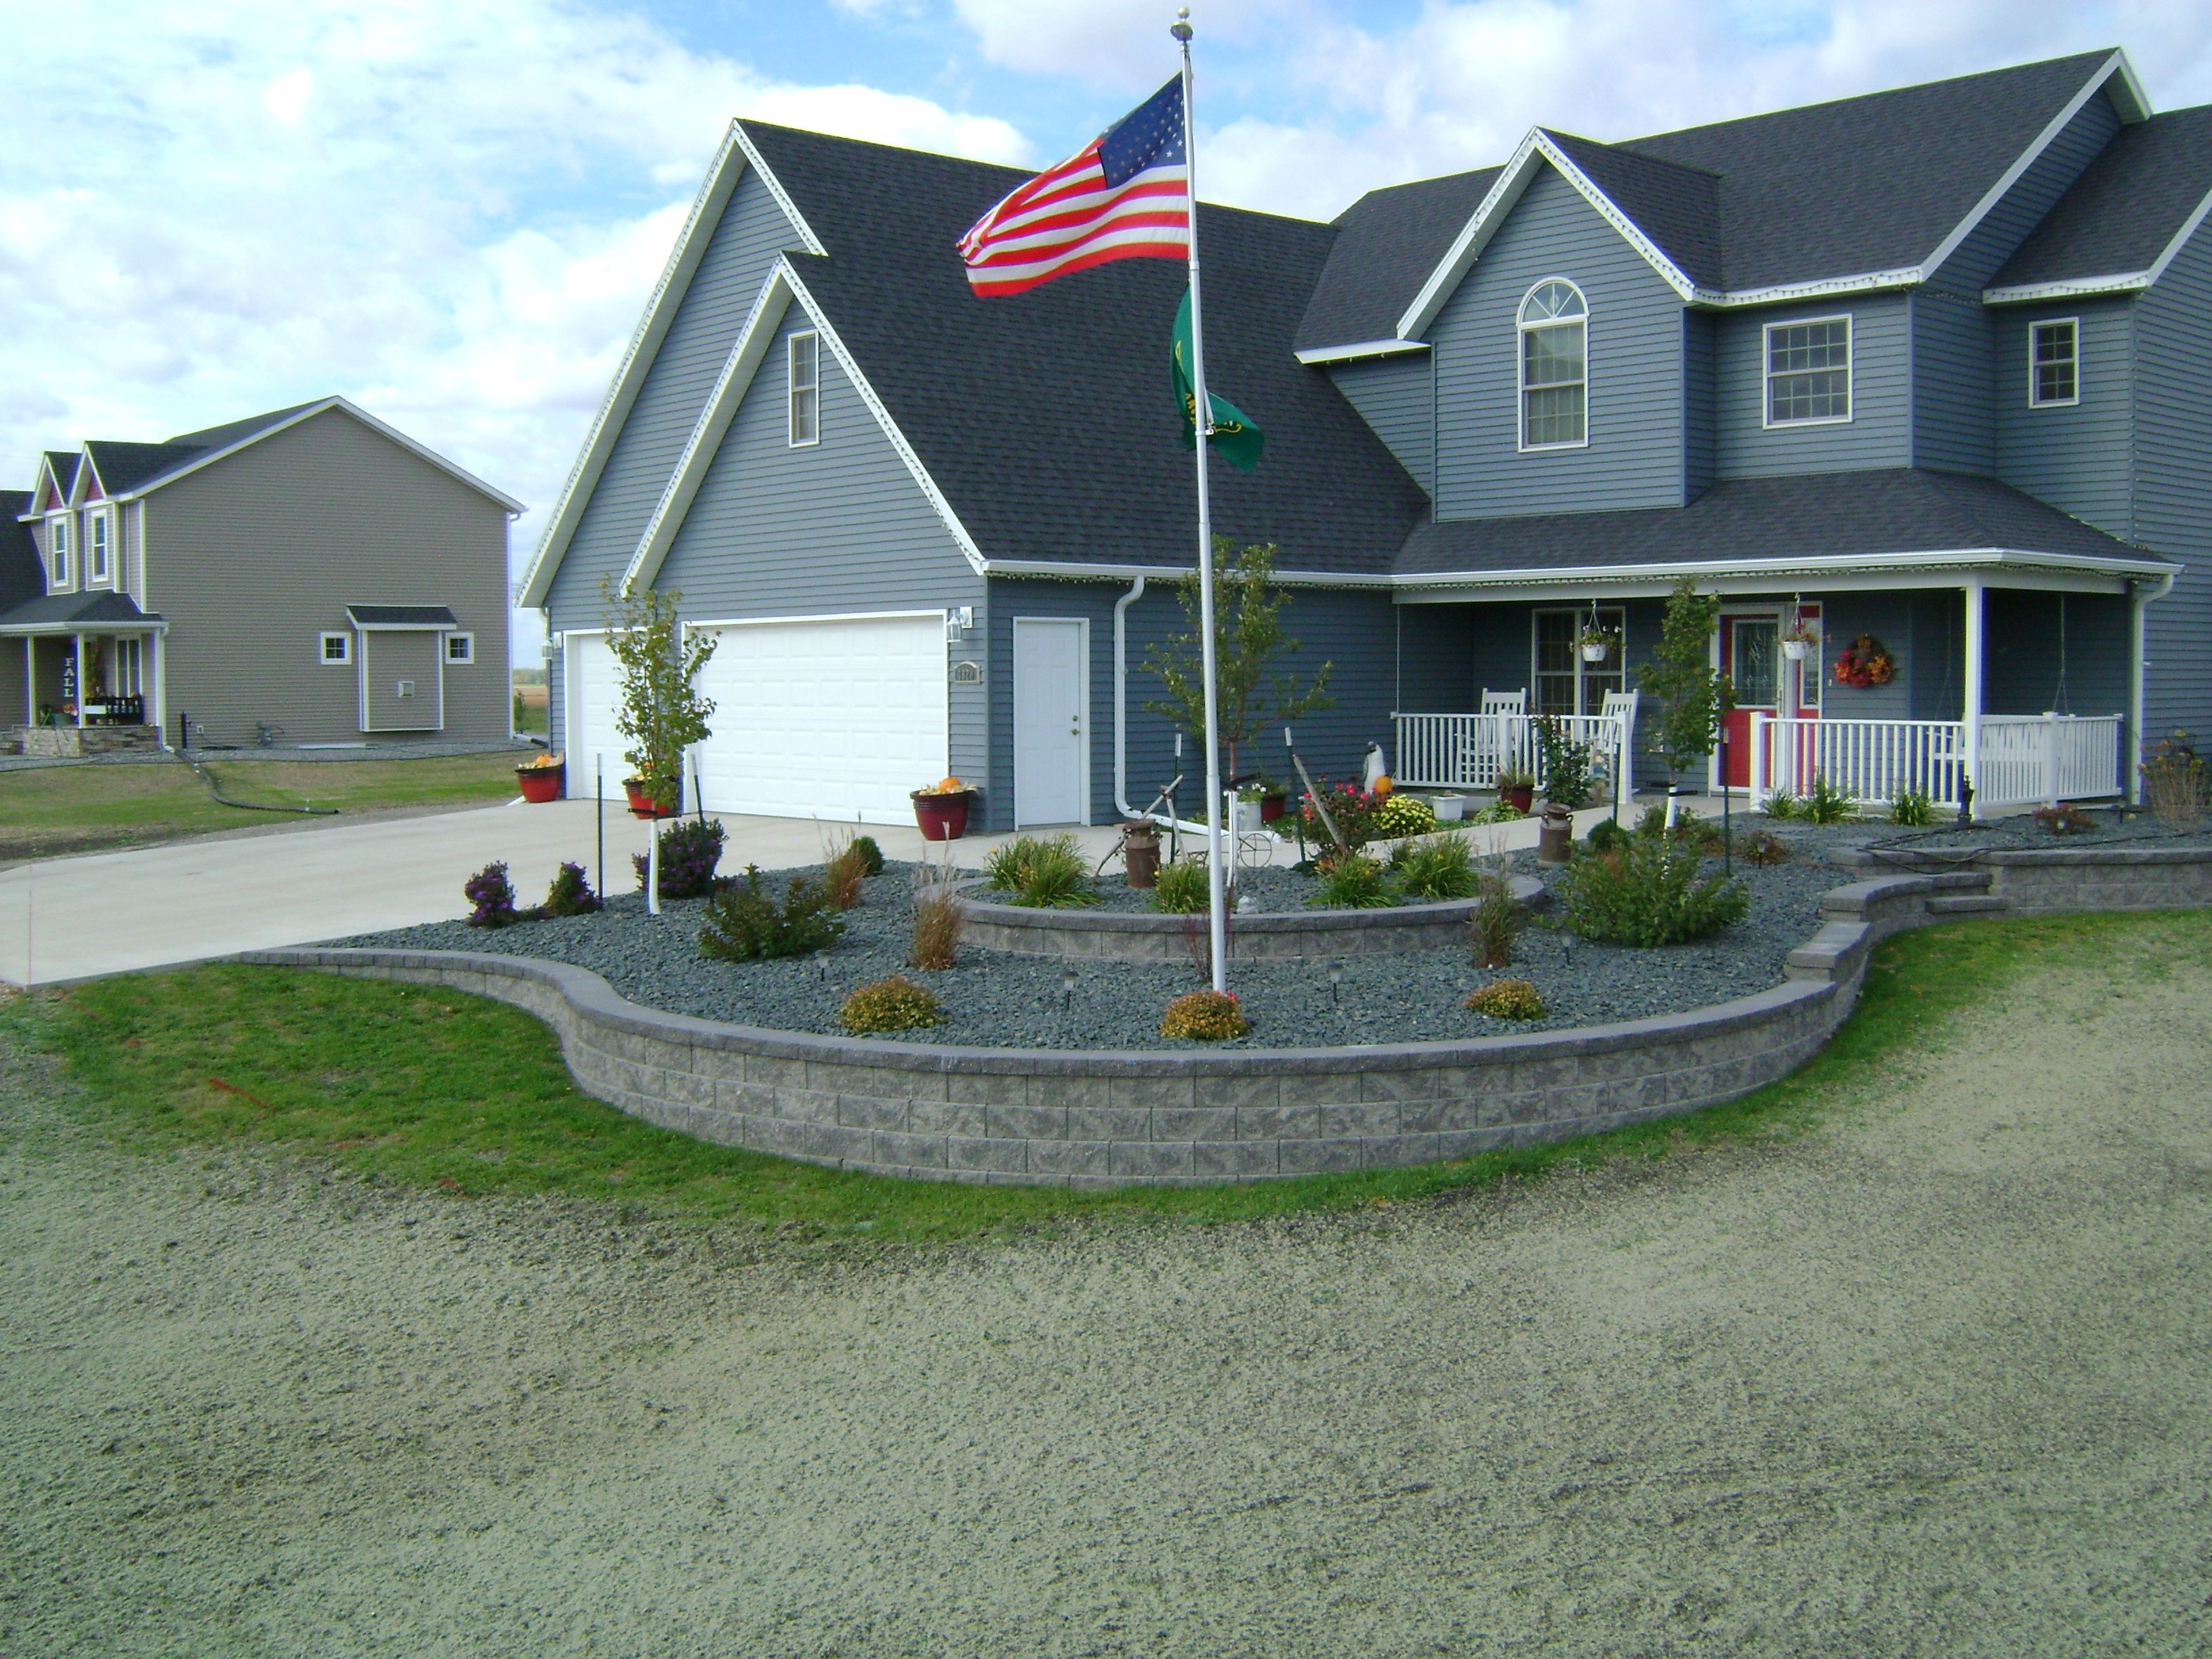 Landscaping Ideas Front Yard Landscaping Design Small Backyard Landscaping Backyard Landscaping